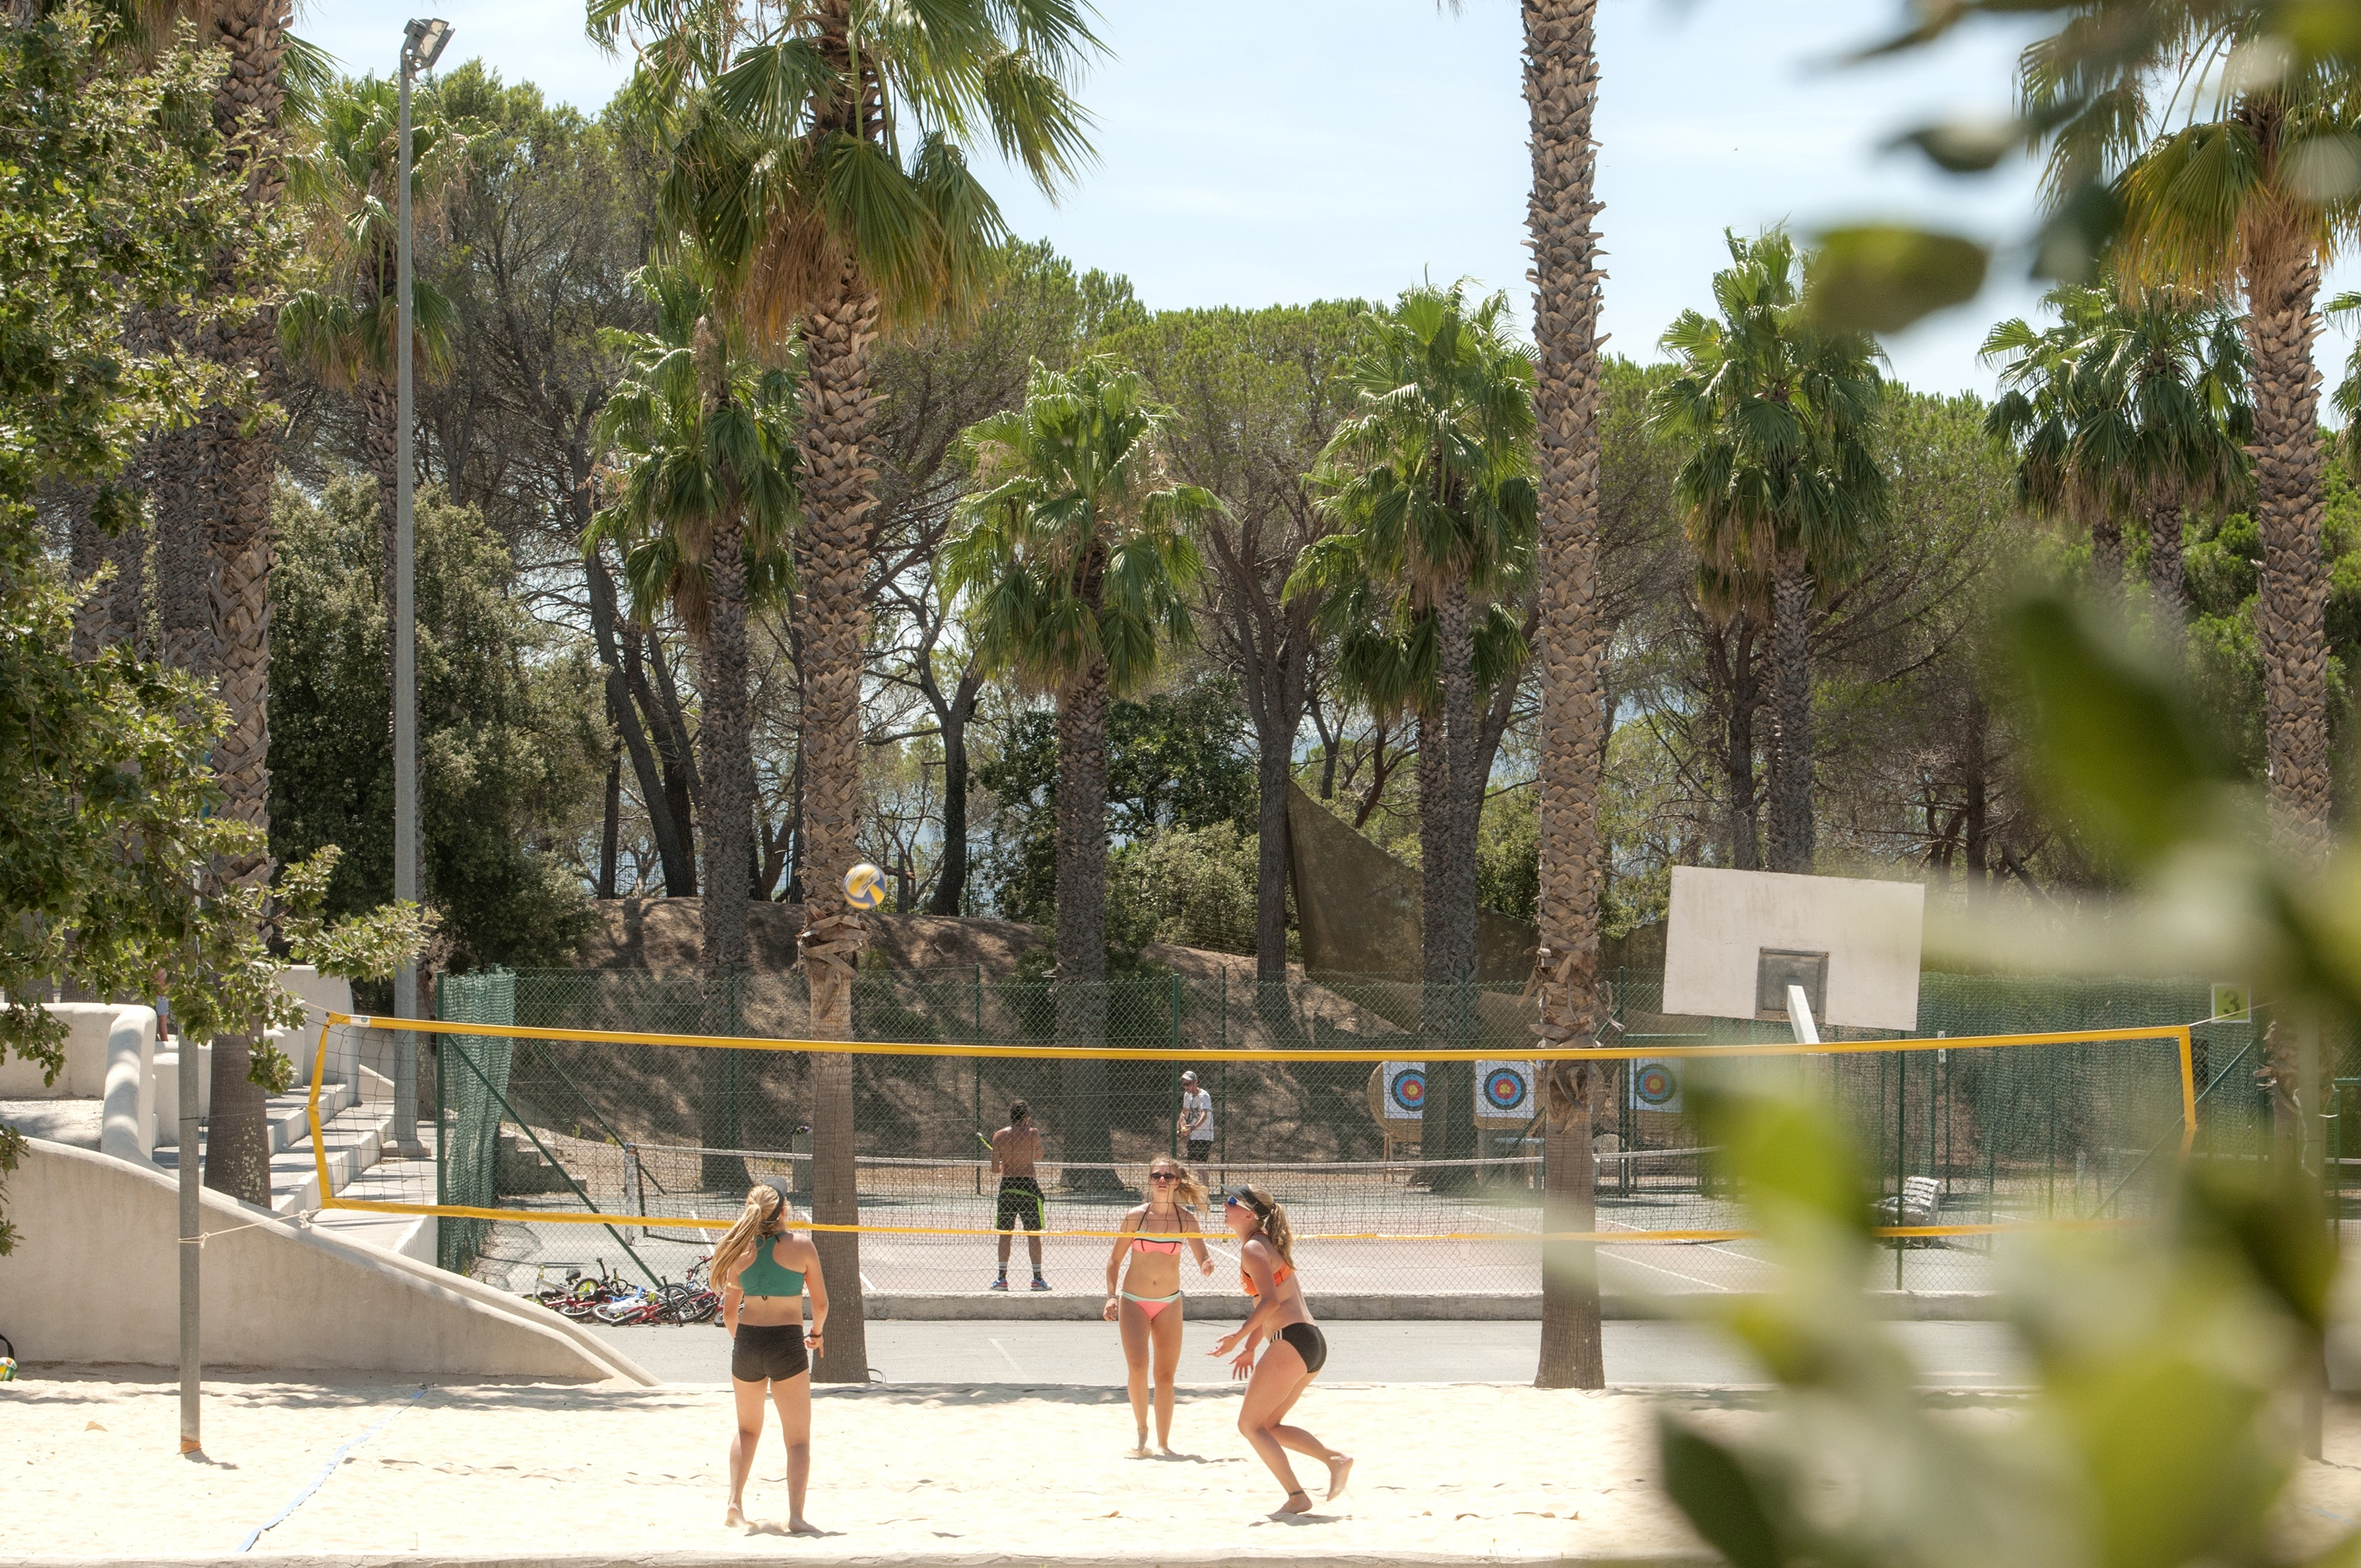 La Baume Volleyball